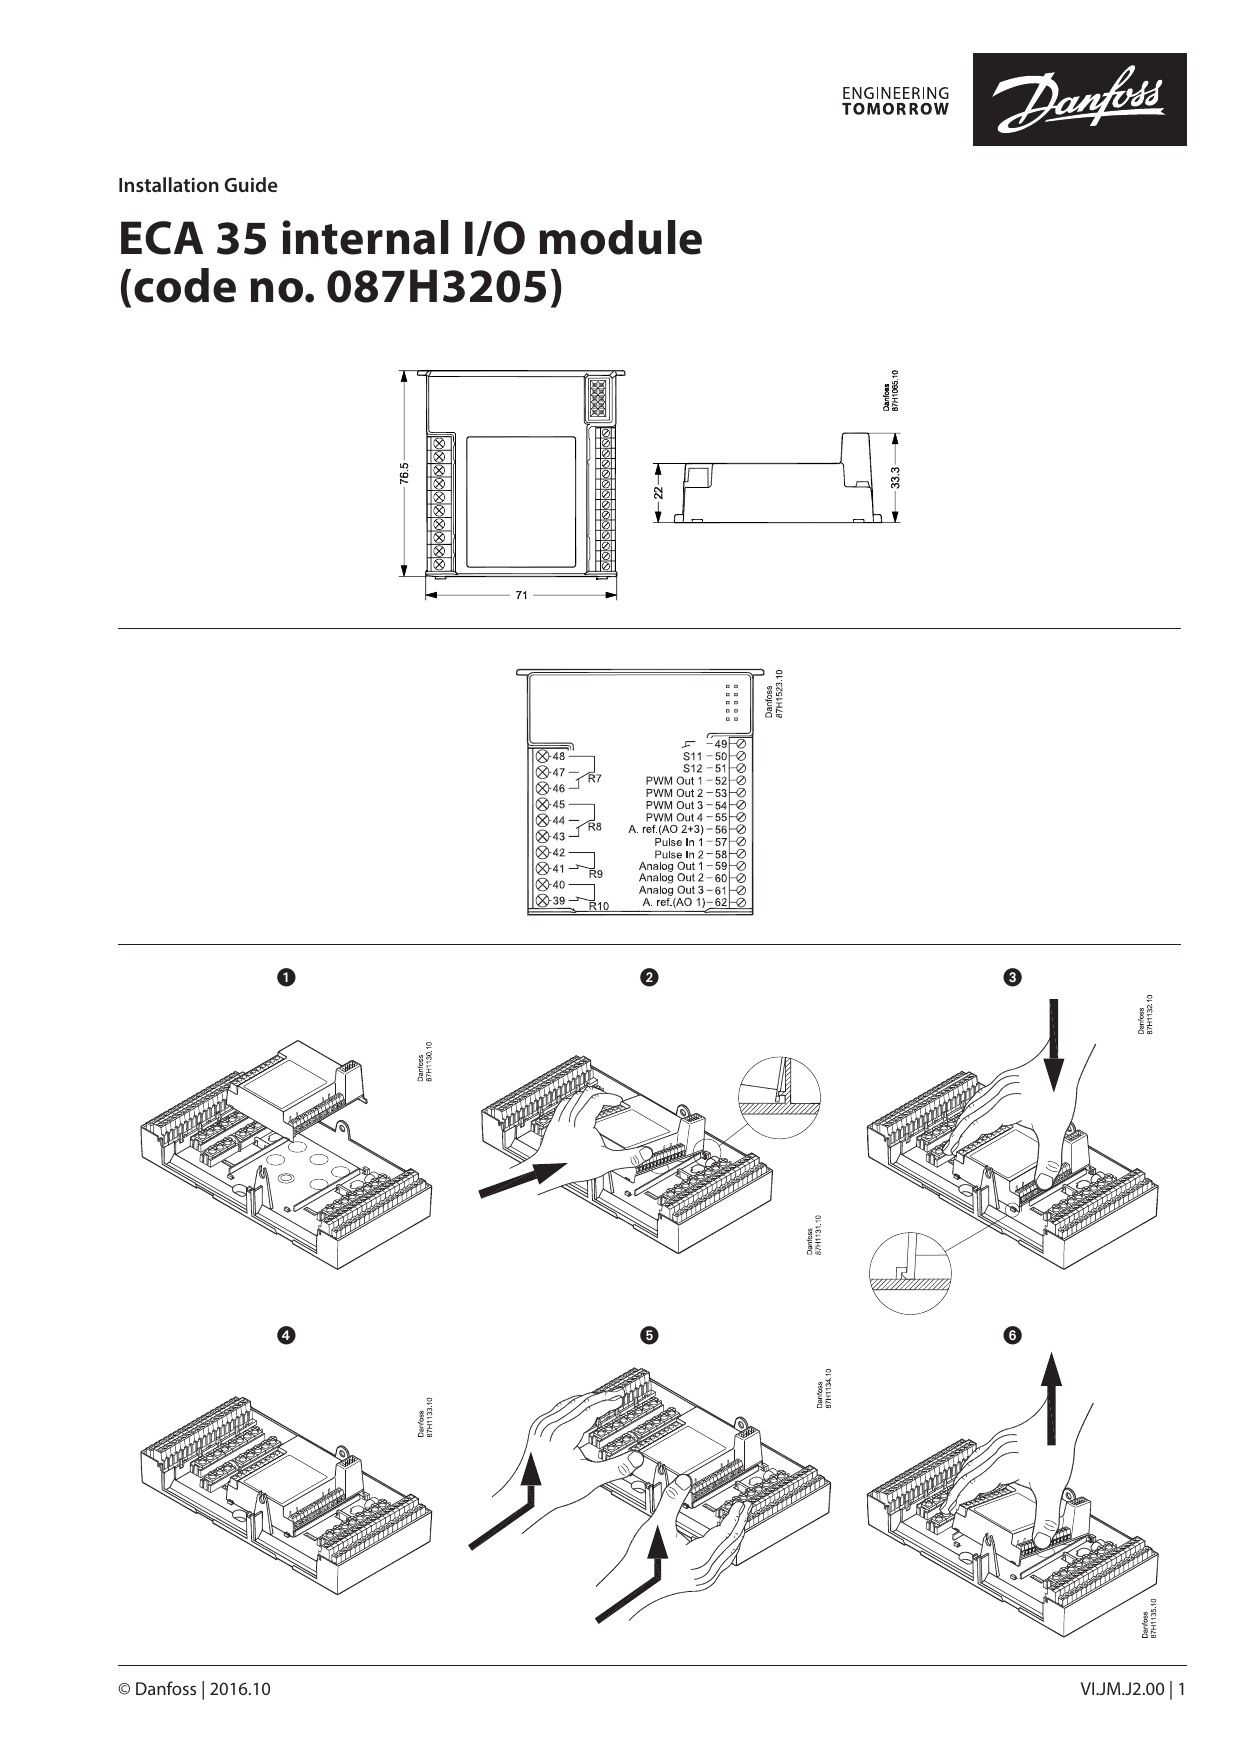 Danfoss ECA 35 internal I/O module Installation Guide